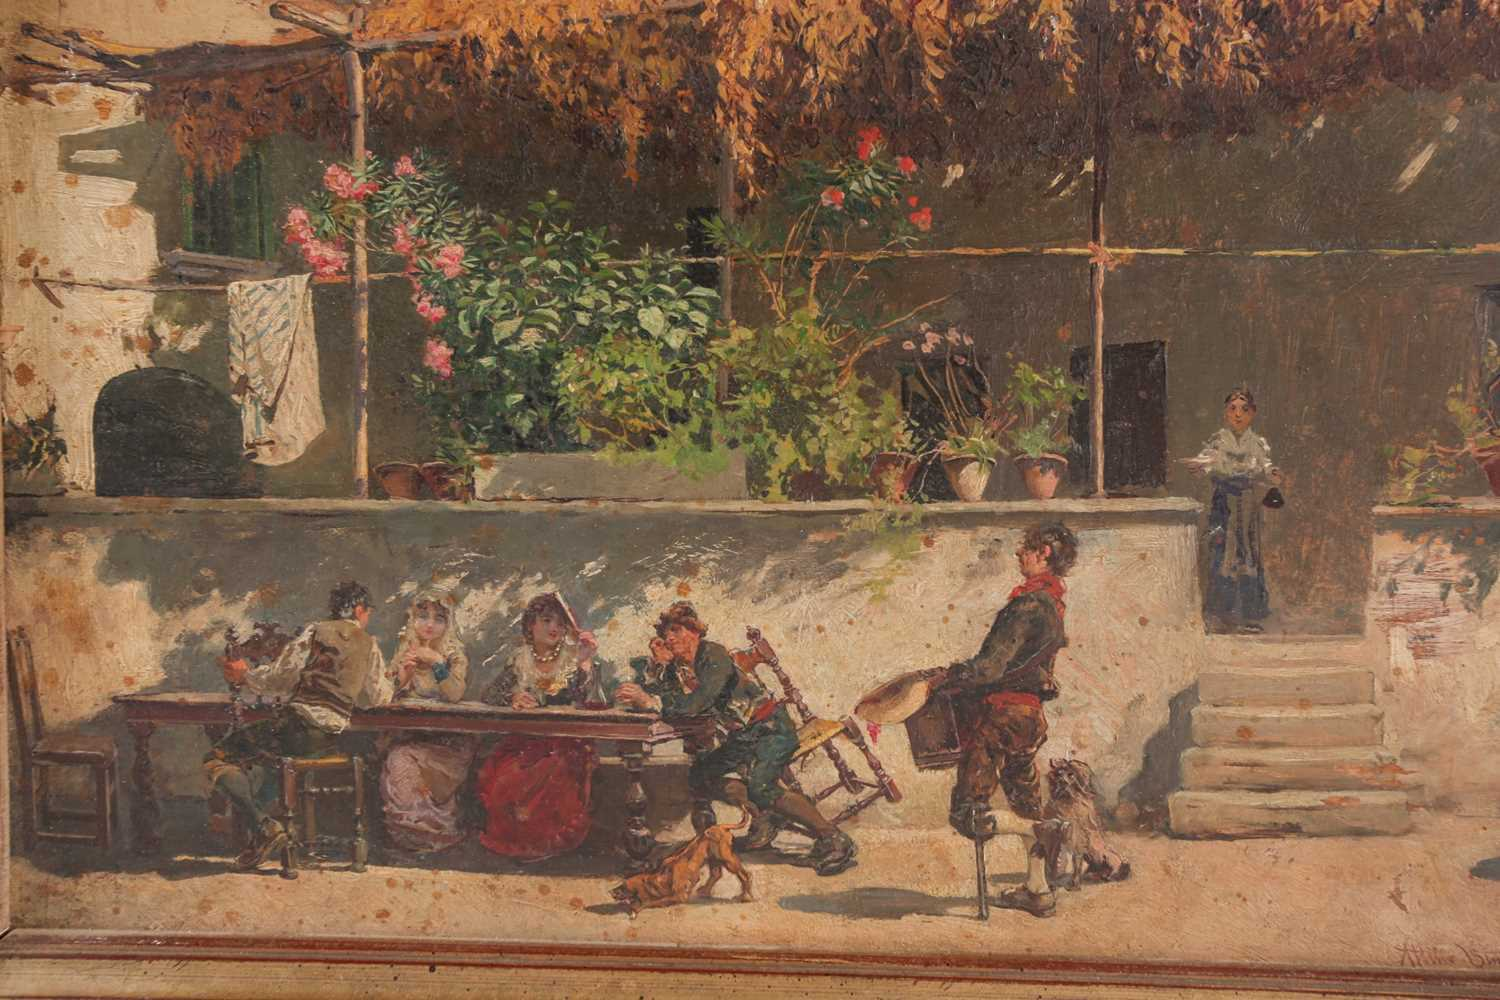 Attilio Simonetti (1874-1922), Waiting of lunch in the mid day sun, oil on panel, signed lower - Image 2 of 6